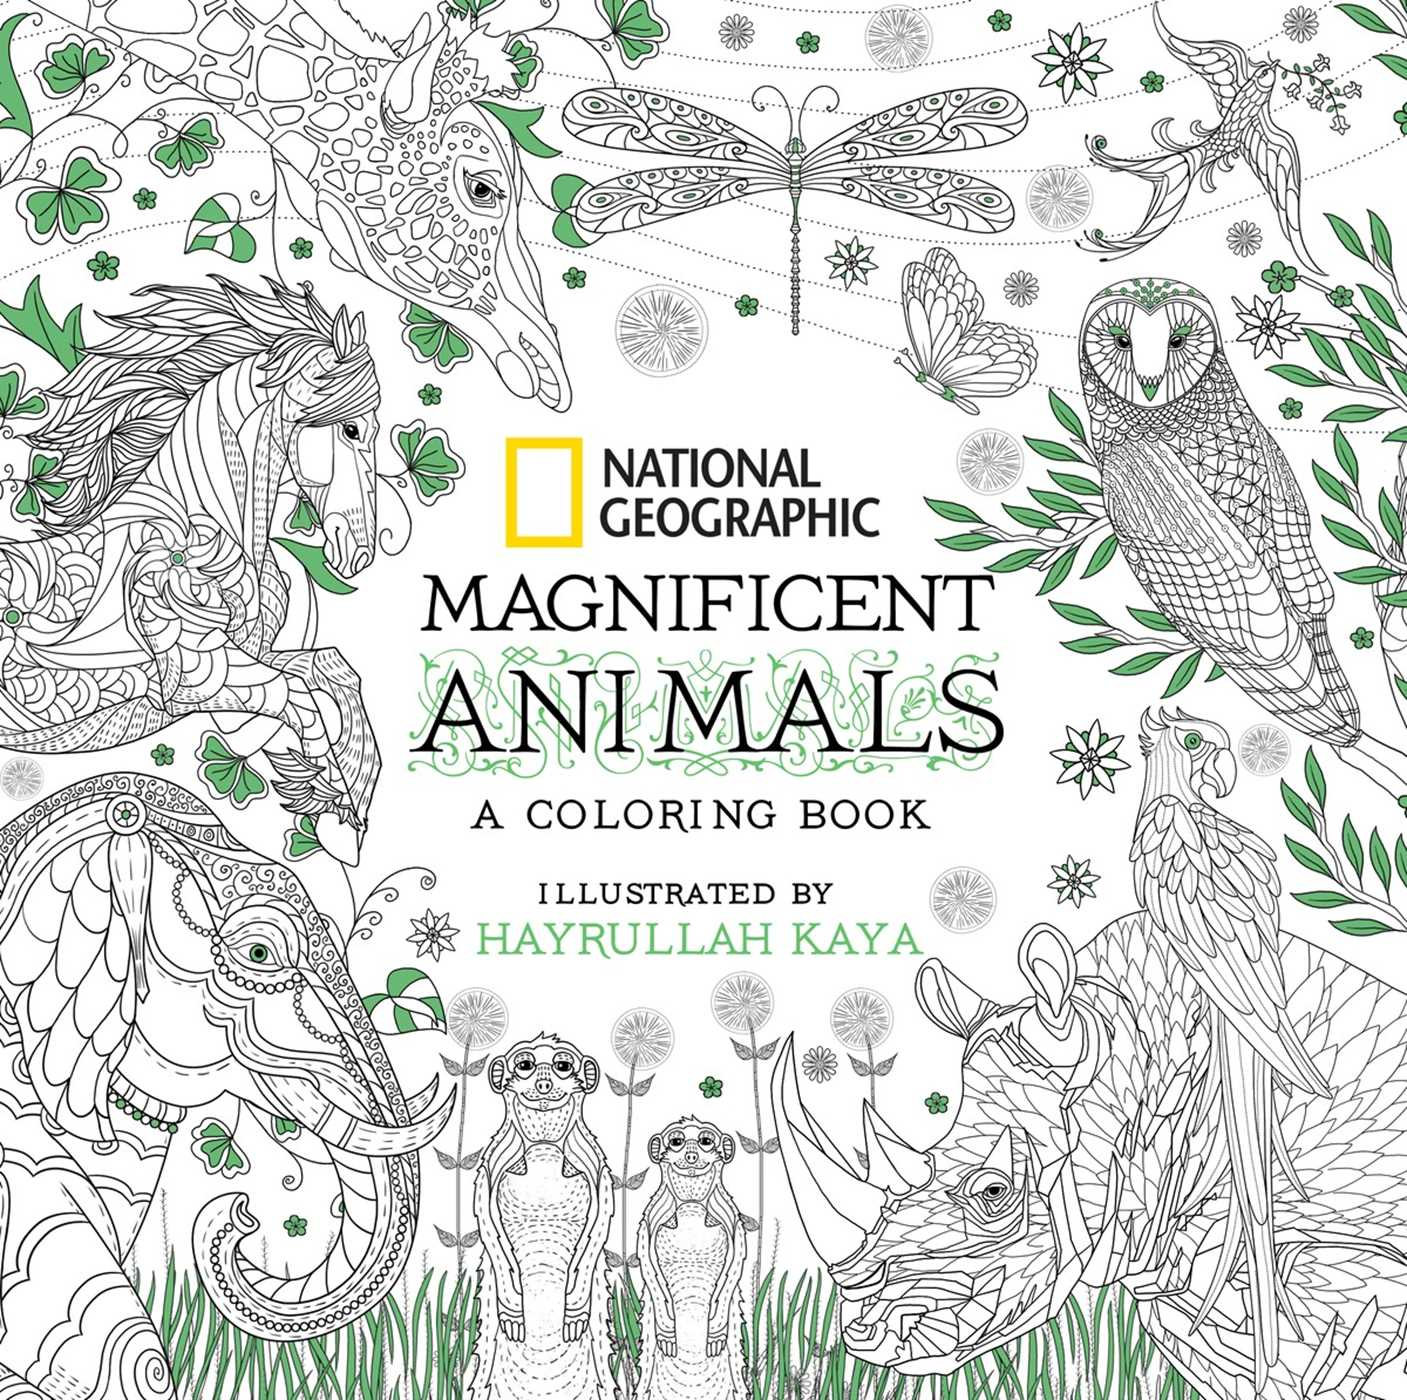 National Geographic Magnificent Animals Coloring Book